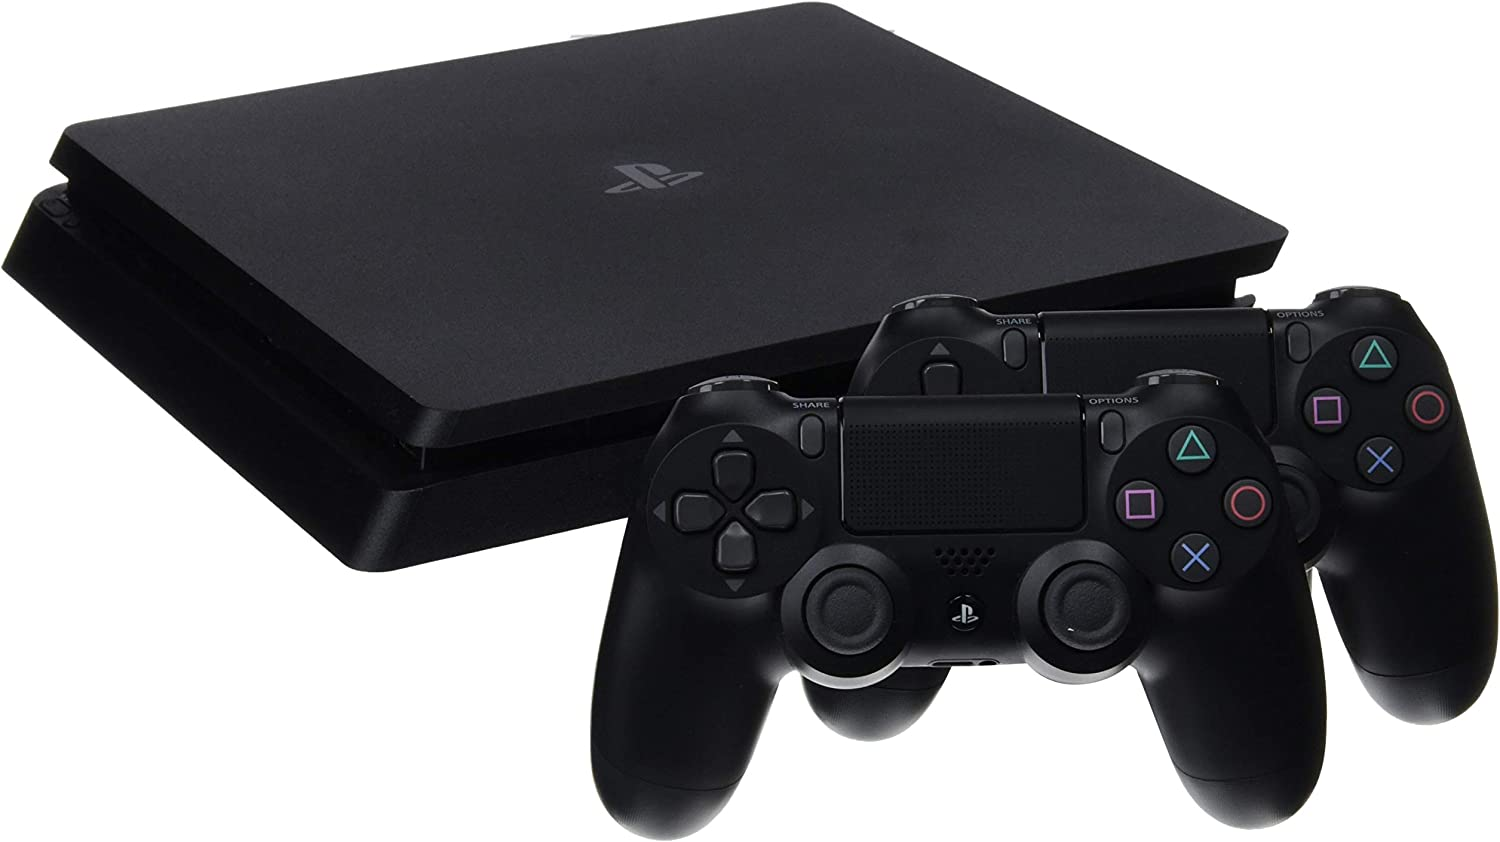 PlayStation 4 (PS4) - Consola de 1 TB + 2 Dual Shock 4 Wireless Controller - nuevo chasis